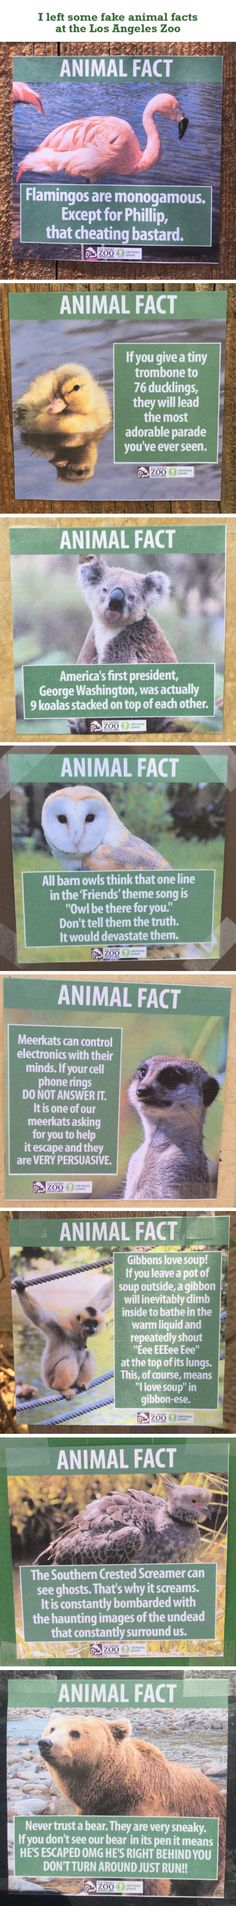 Animal Facts www.sta.cr/2BRM5 #animalfacts #fake #funny